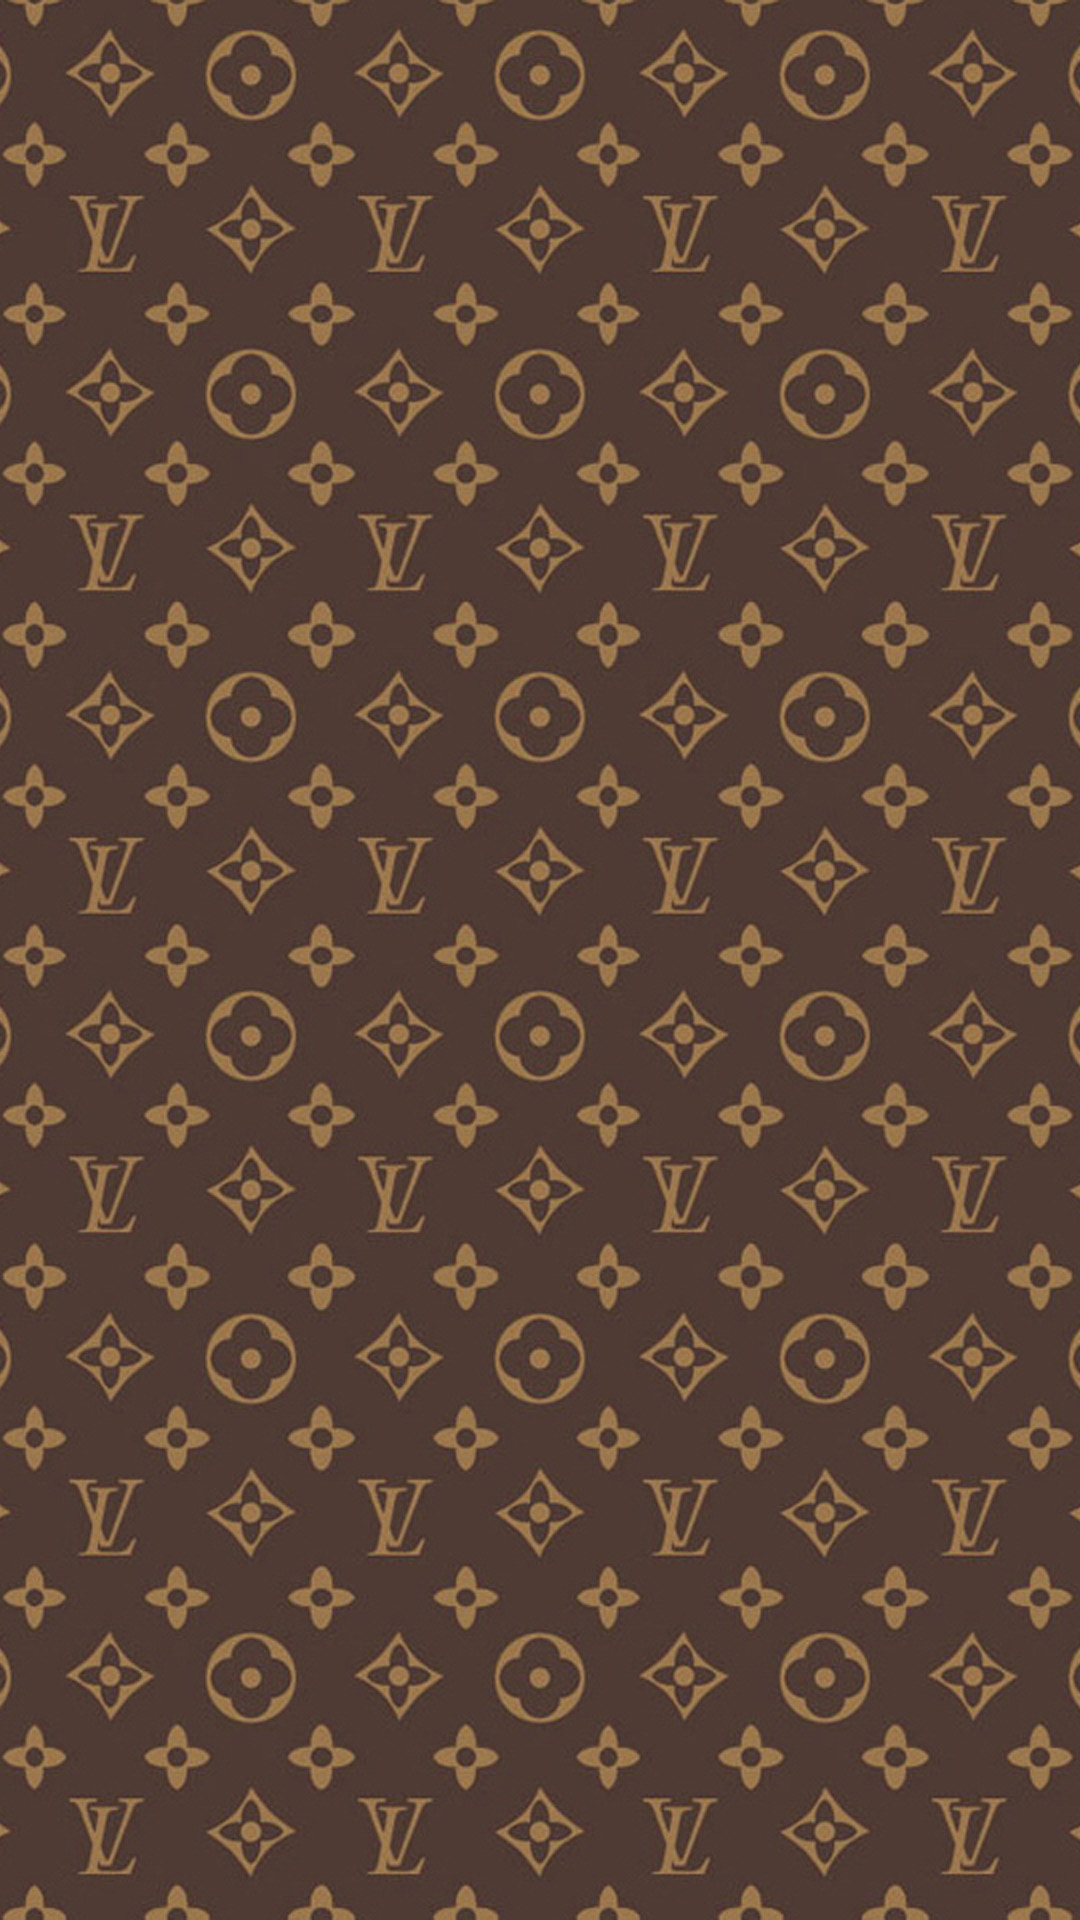 Wallpaper iphone louis vuitton - Brown Lv Louis Vuitton Hd Wallpaper Iphone 6 Plus